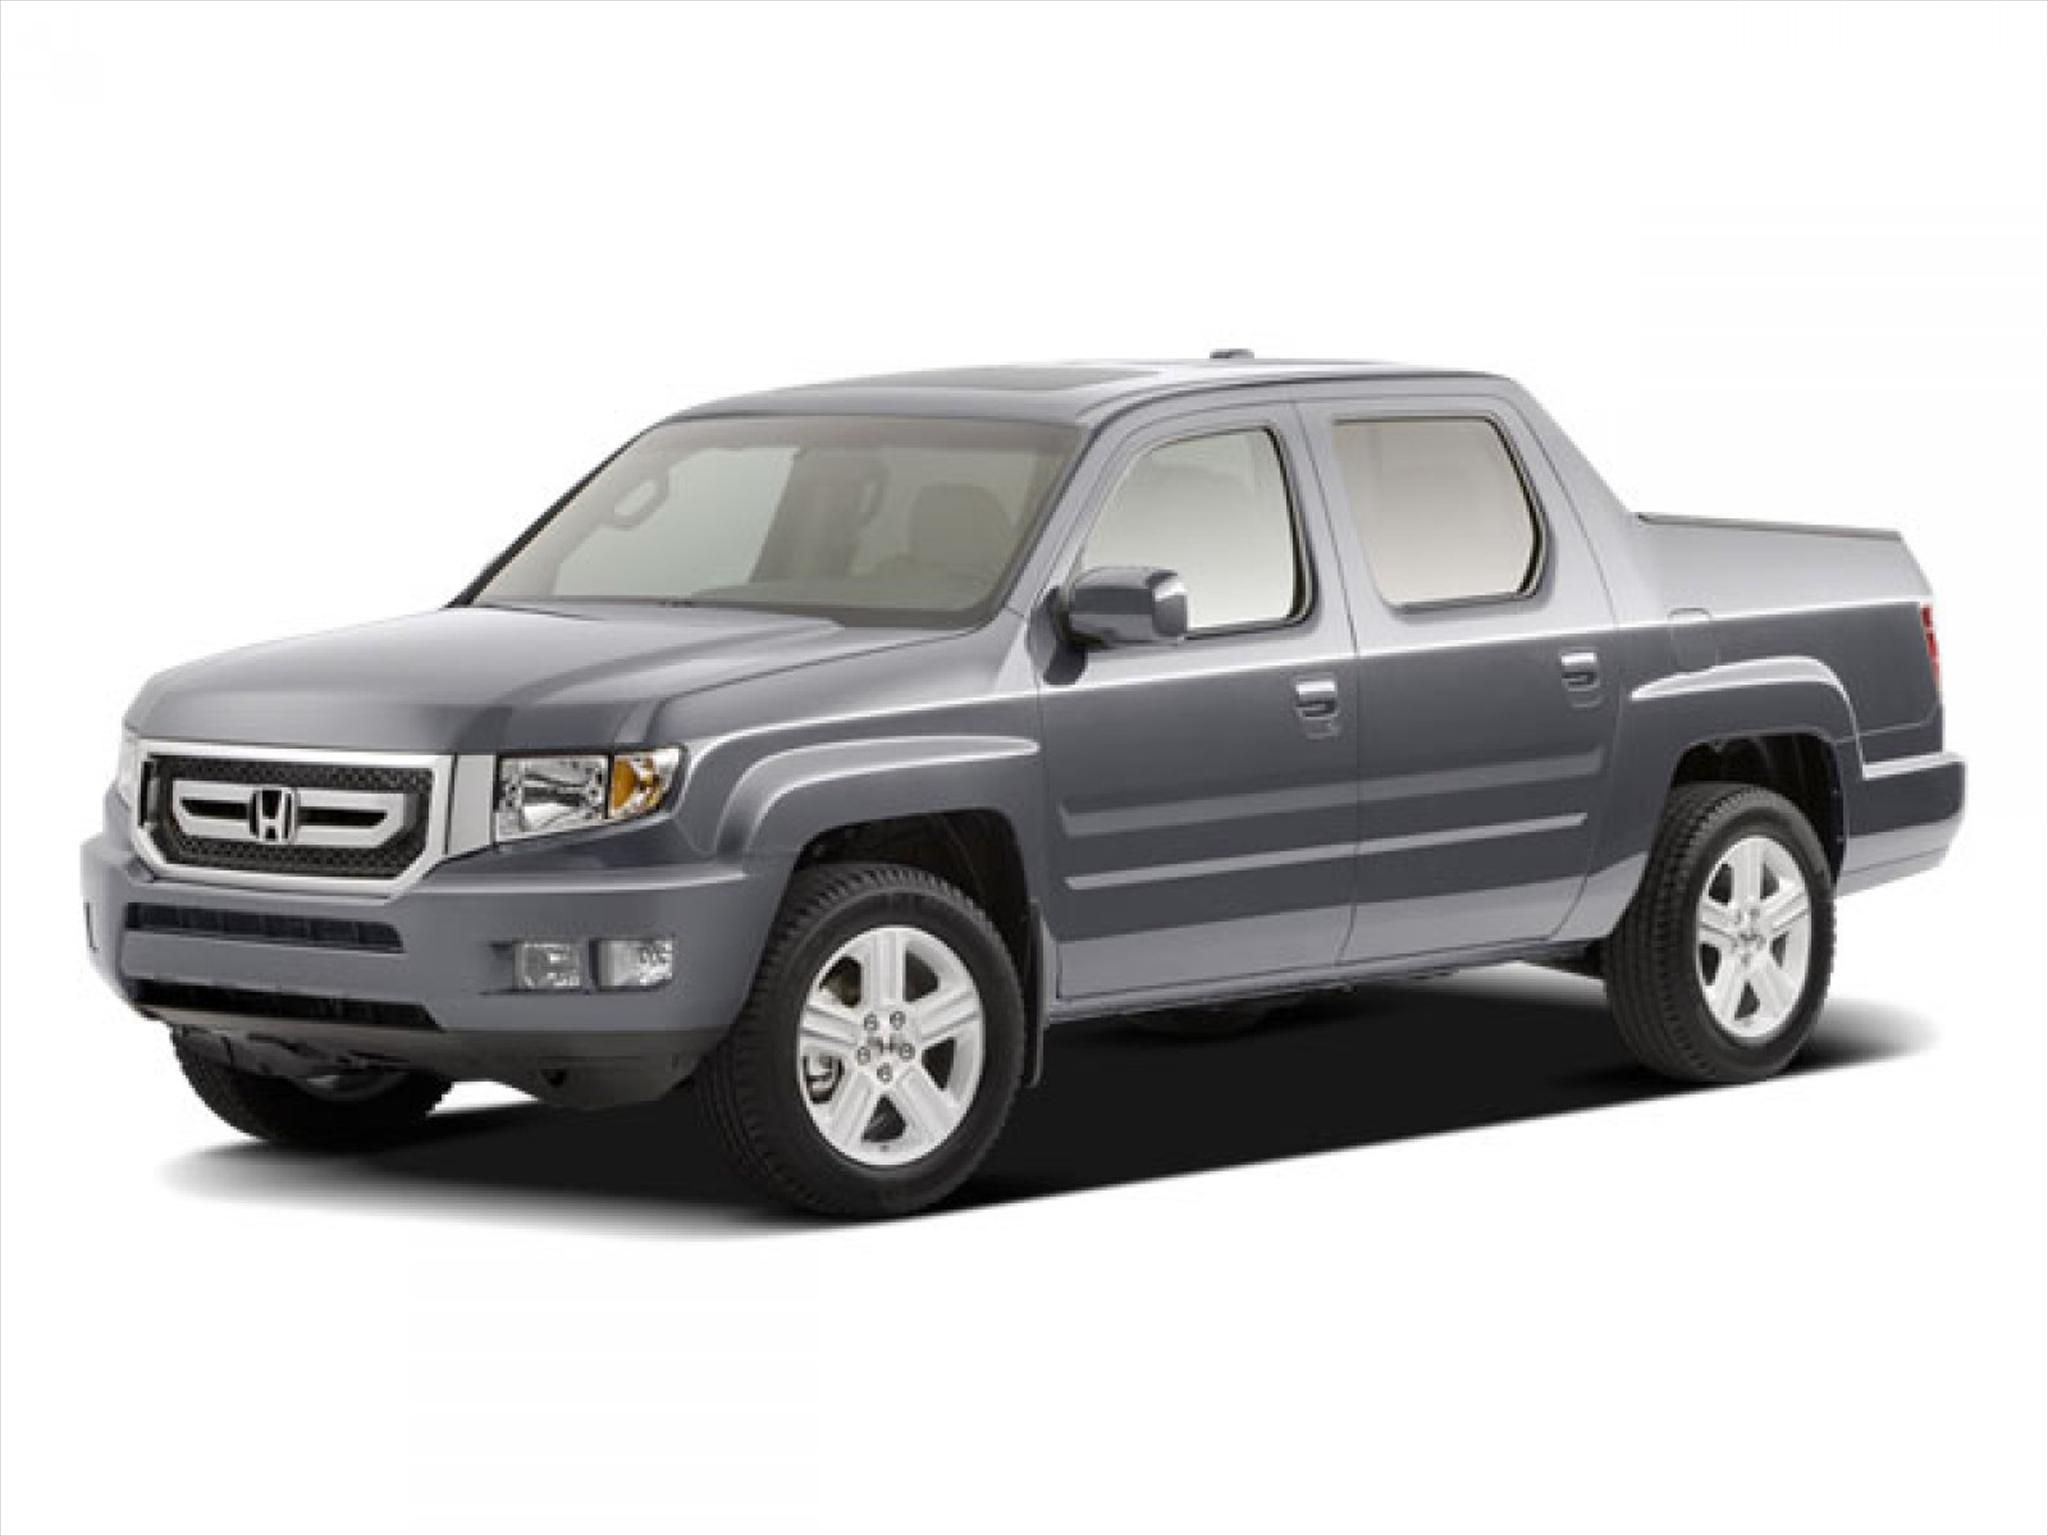 2009 honda ridgeline rts for sale. Black Bedroom Furniture Sets. Home Design Ideas